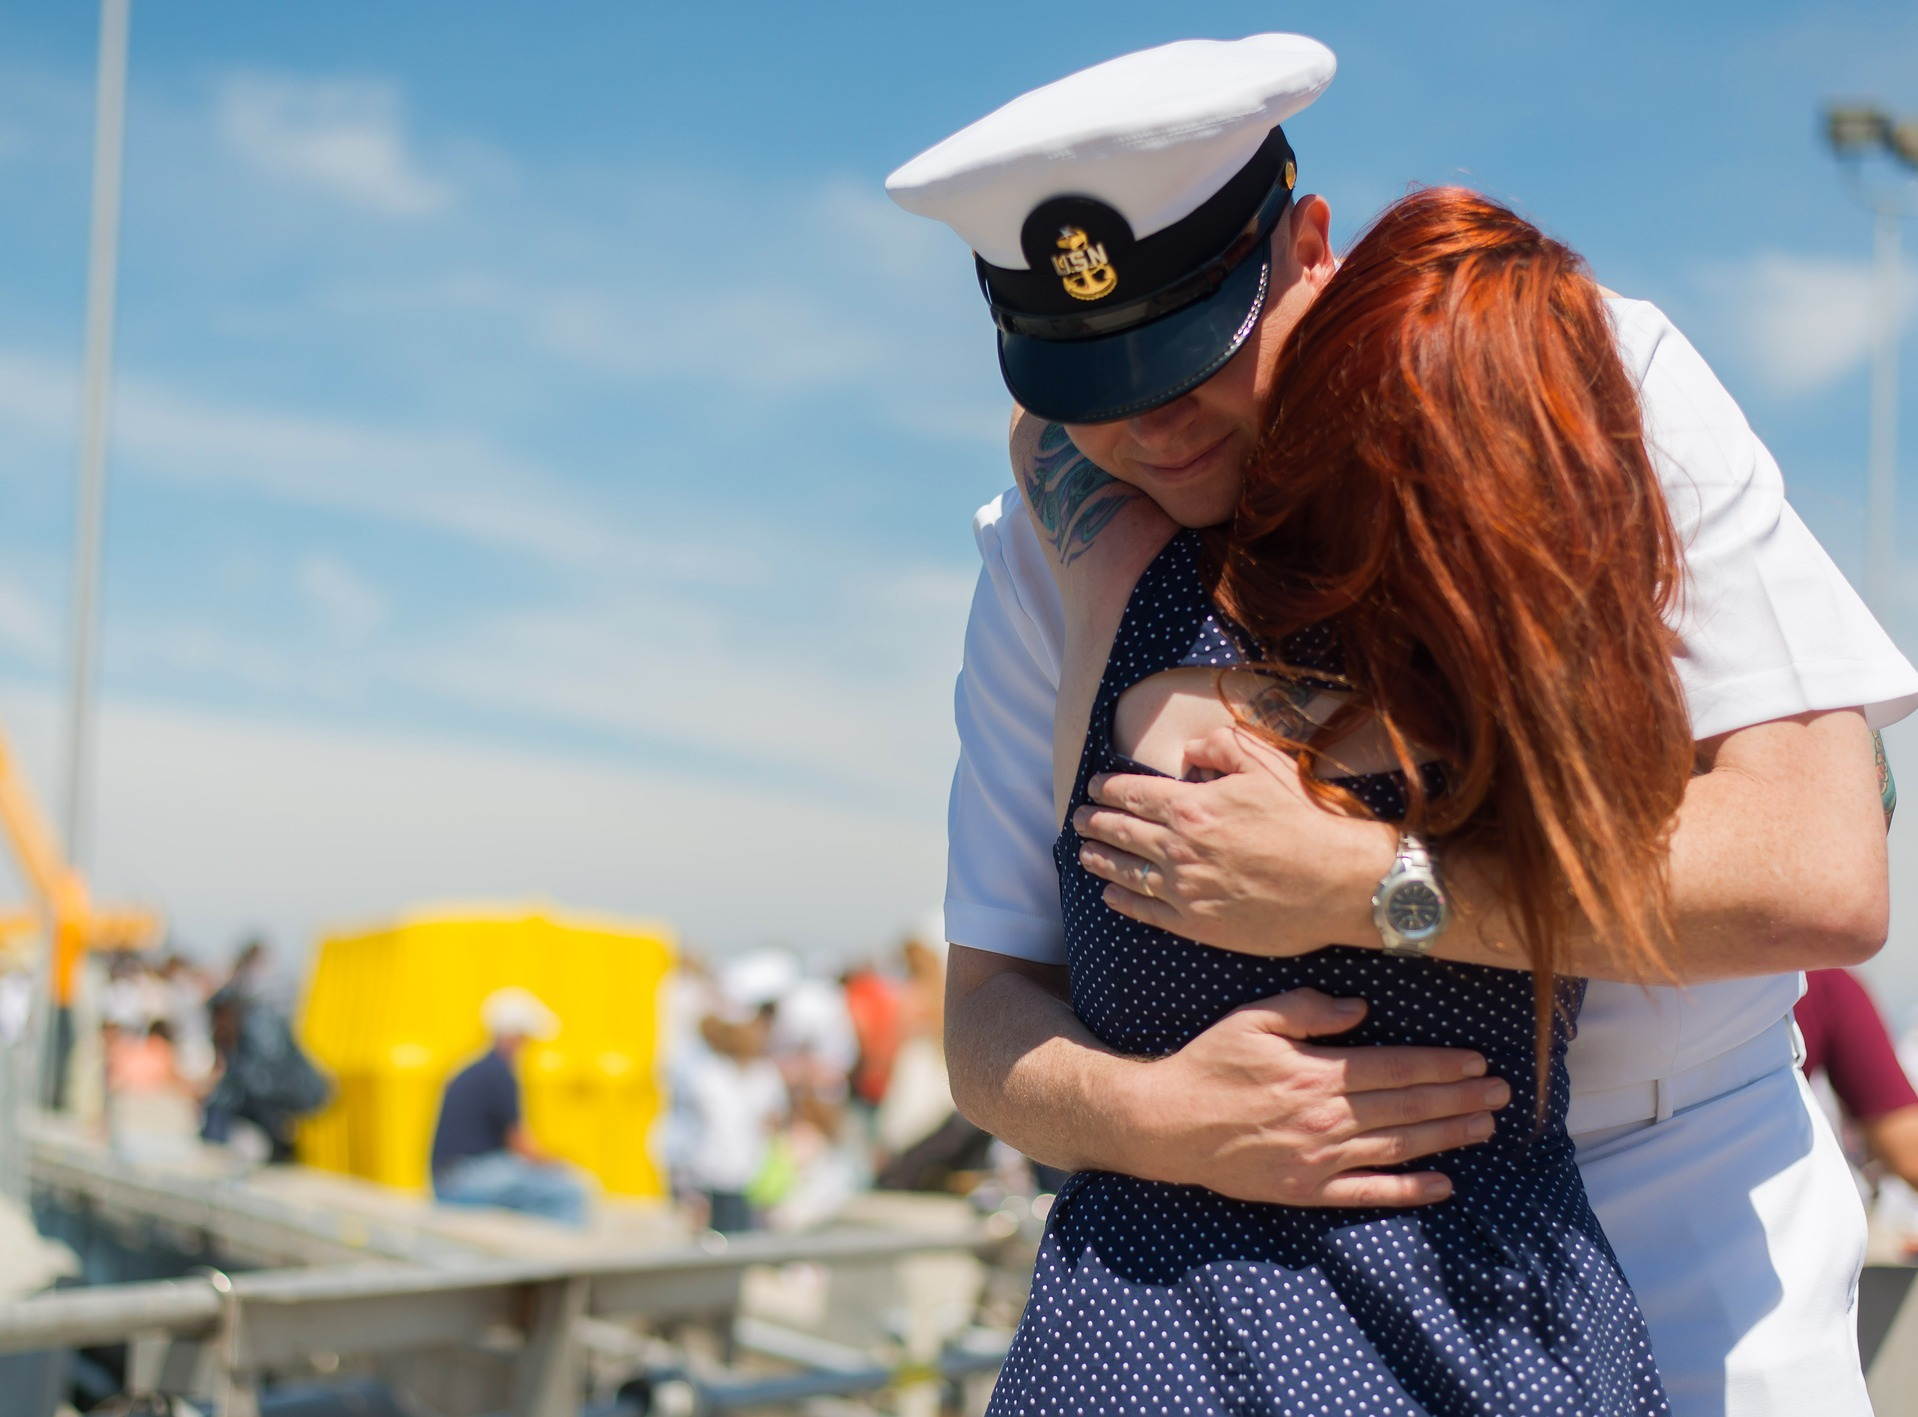 It's important to be able to see and talk to your spouse who is serving in the military